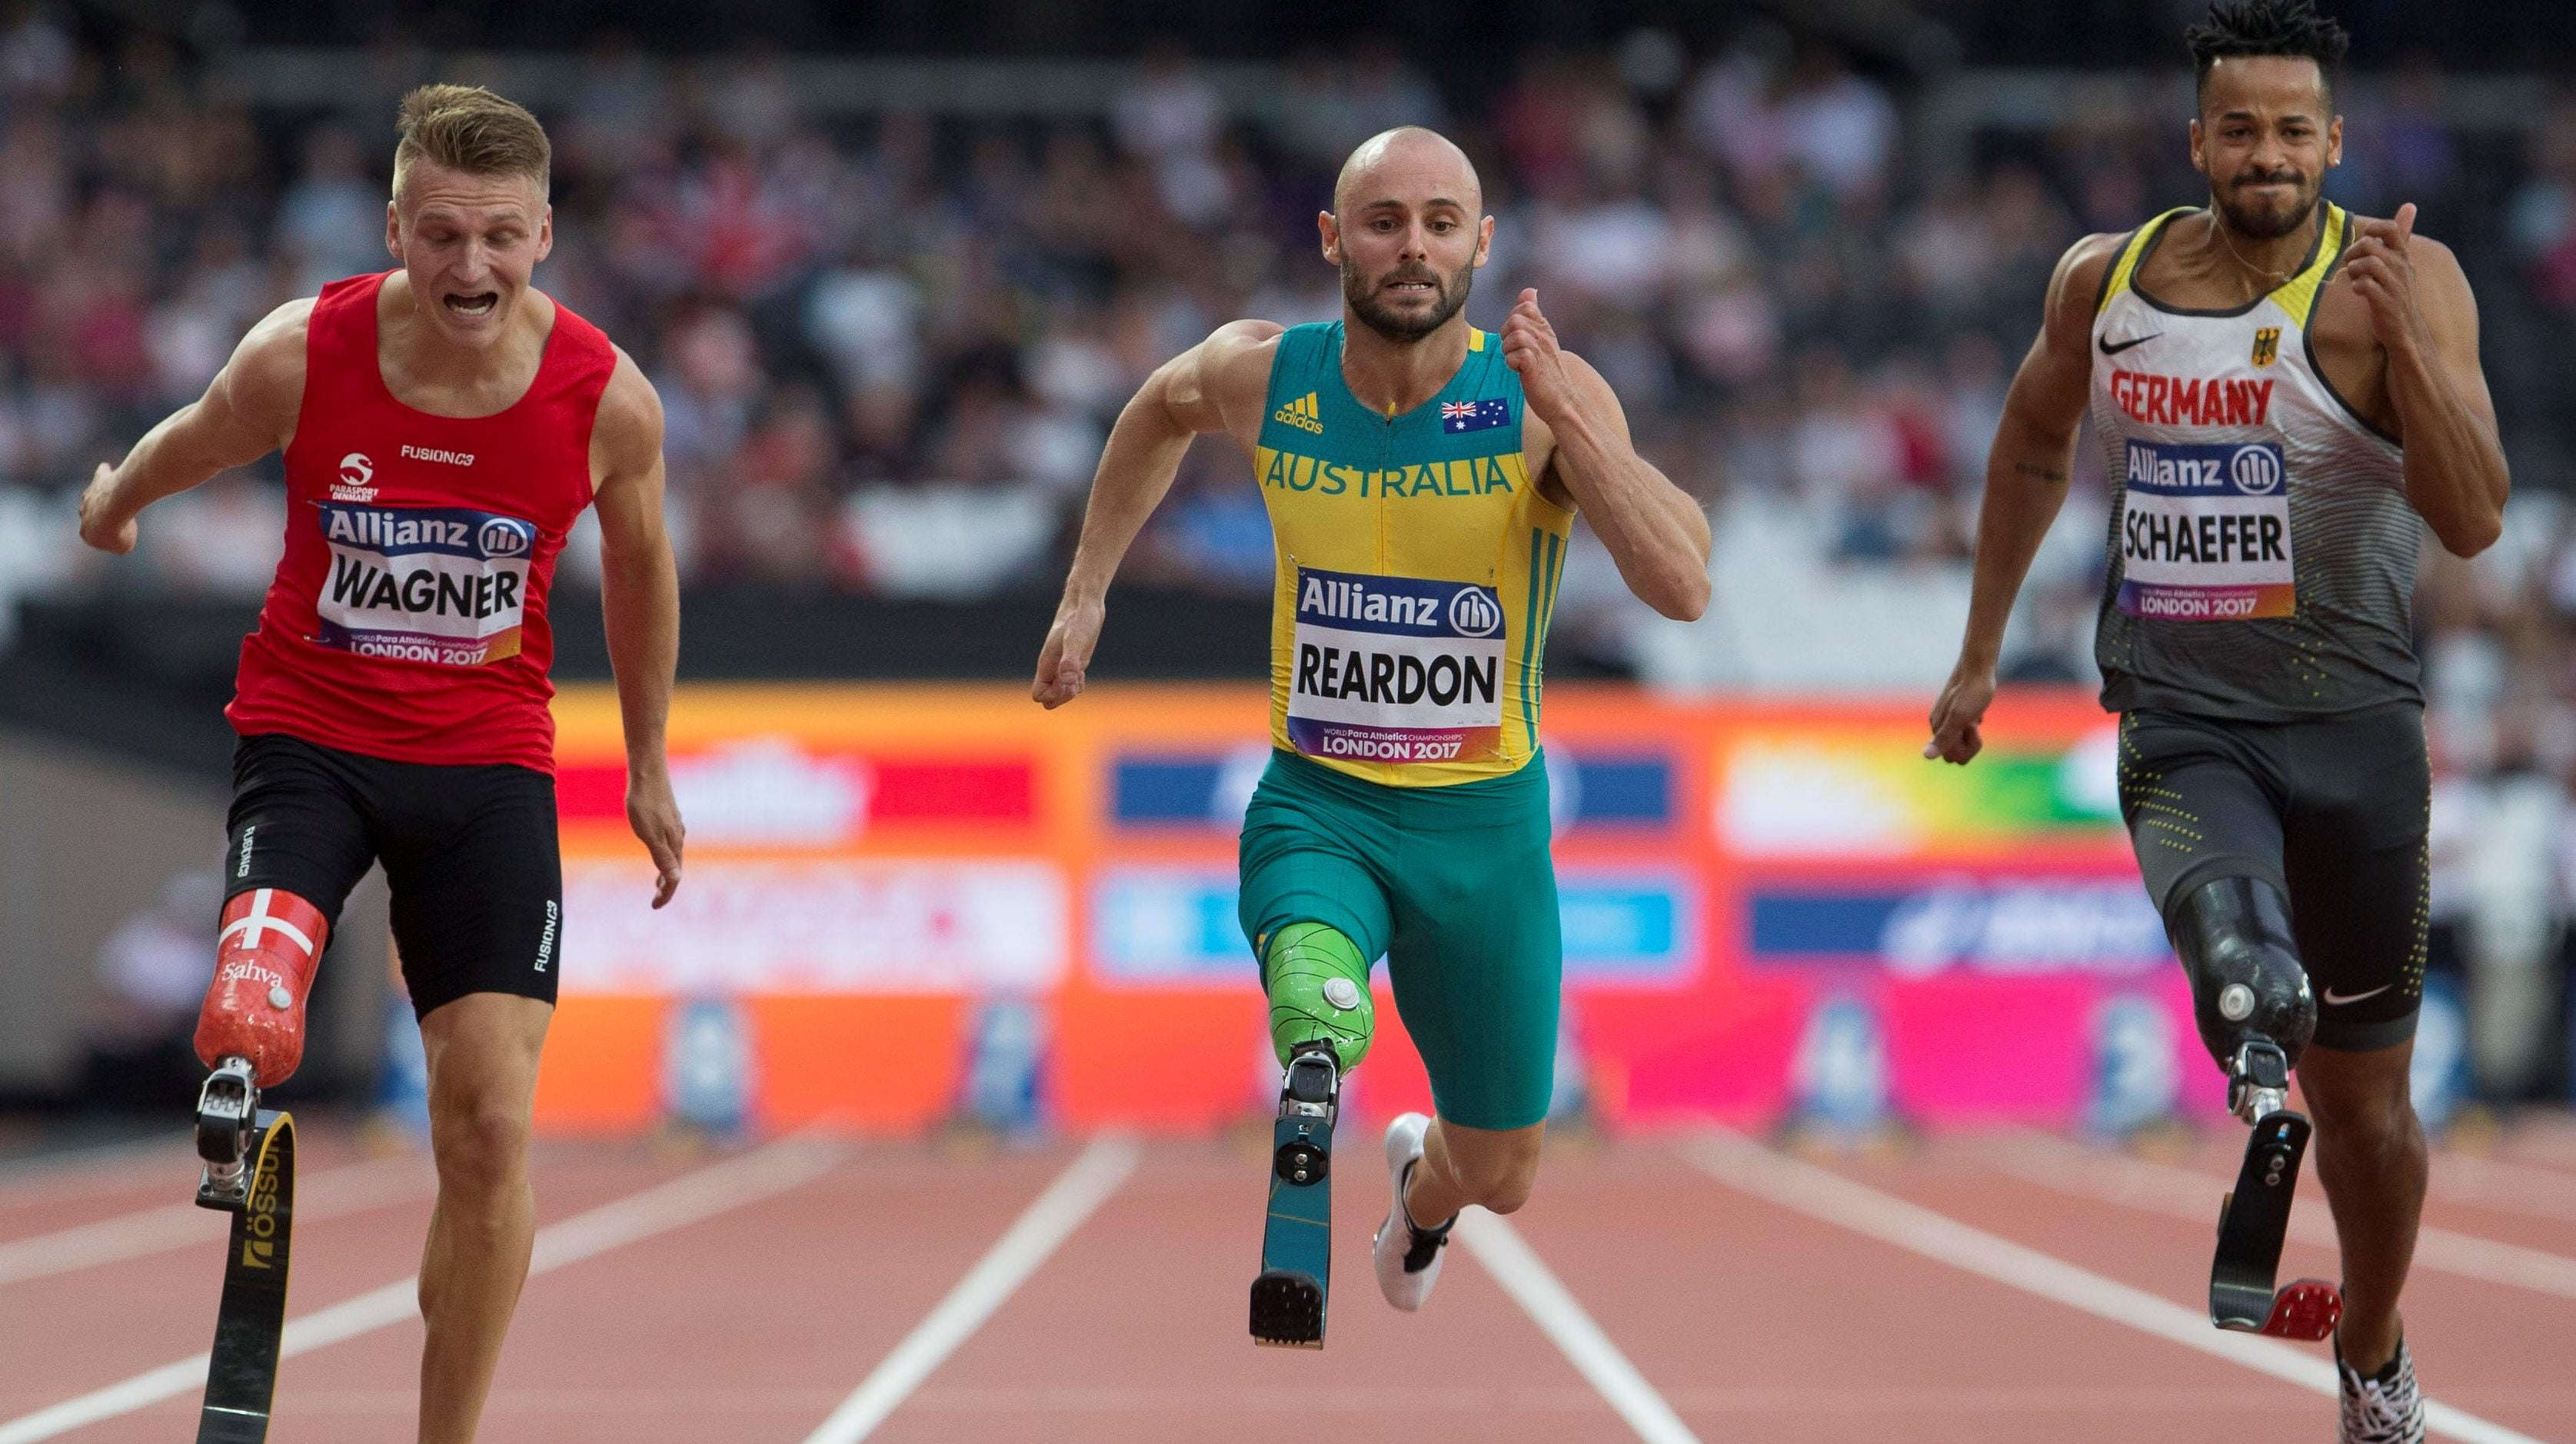 Australia finish in top five at London 2017